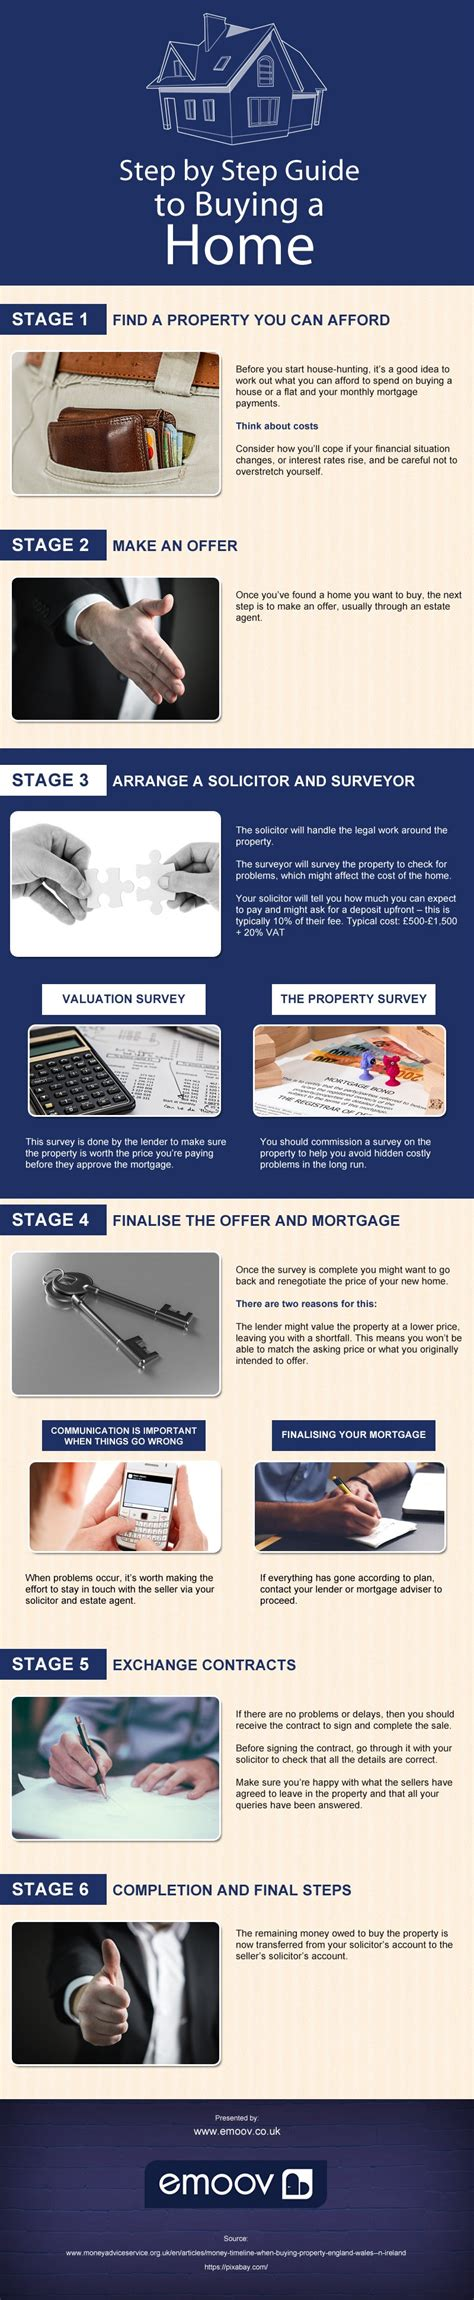 step by step to buy a house step by step guide to buying a home infographic